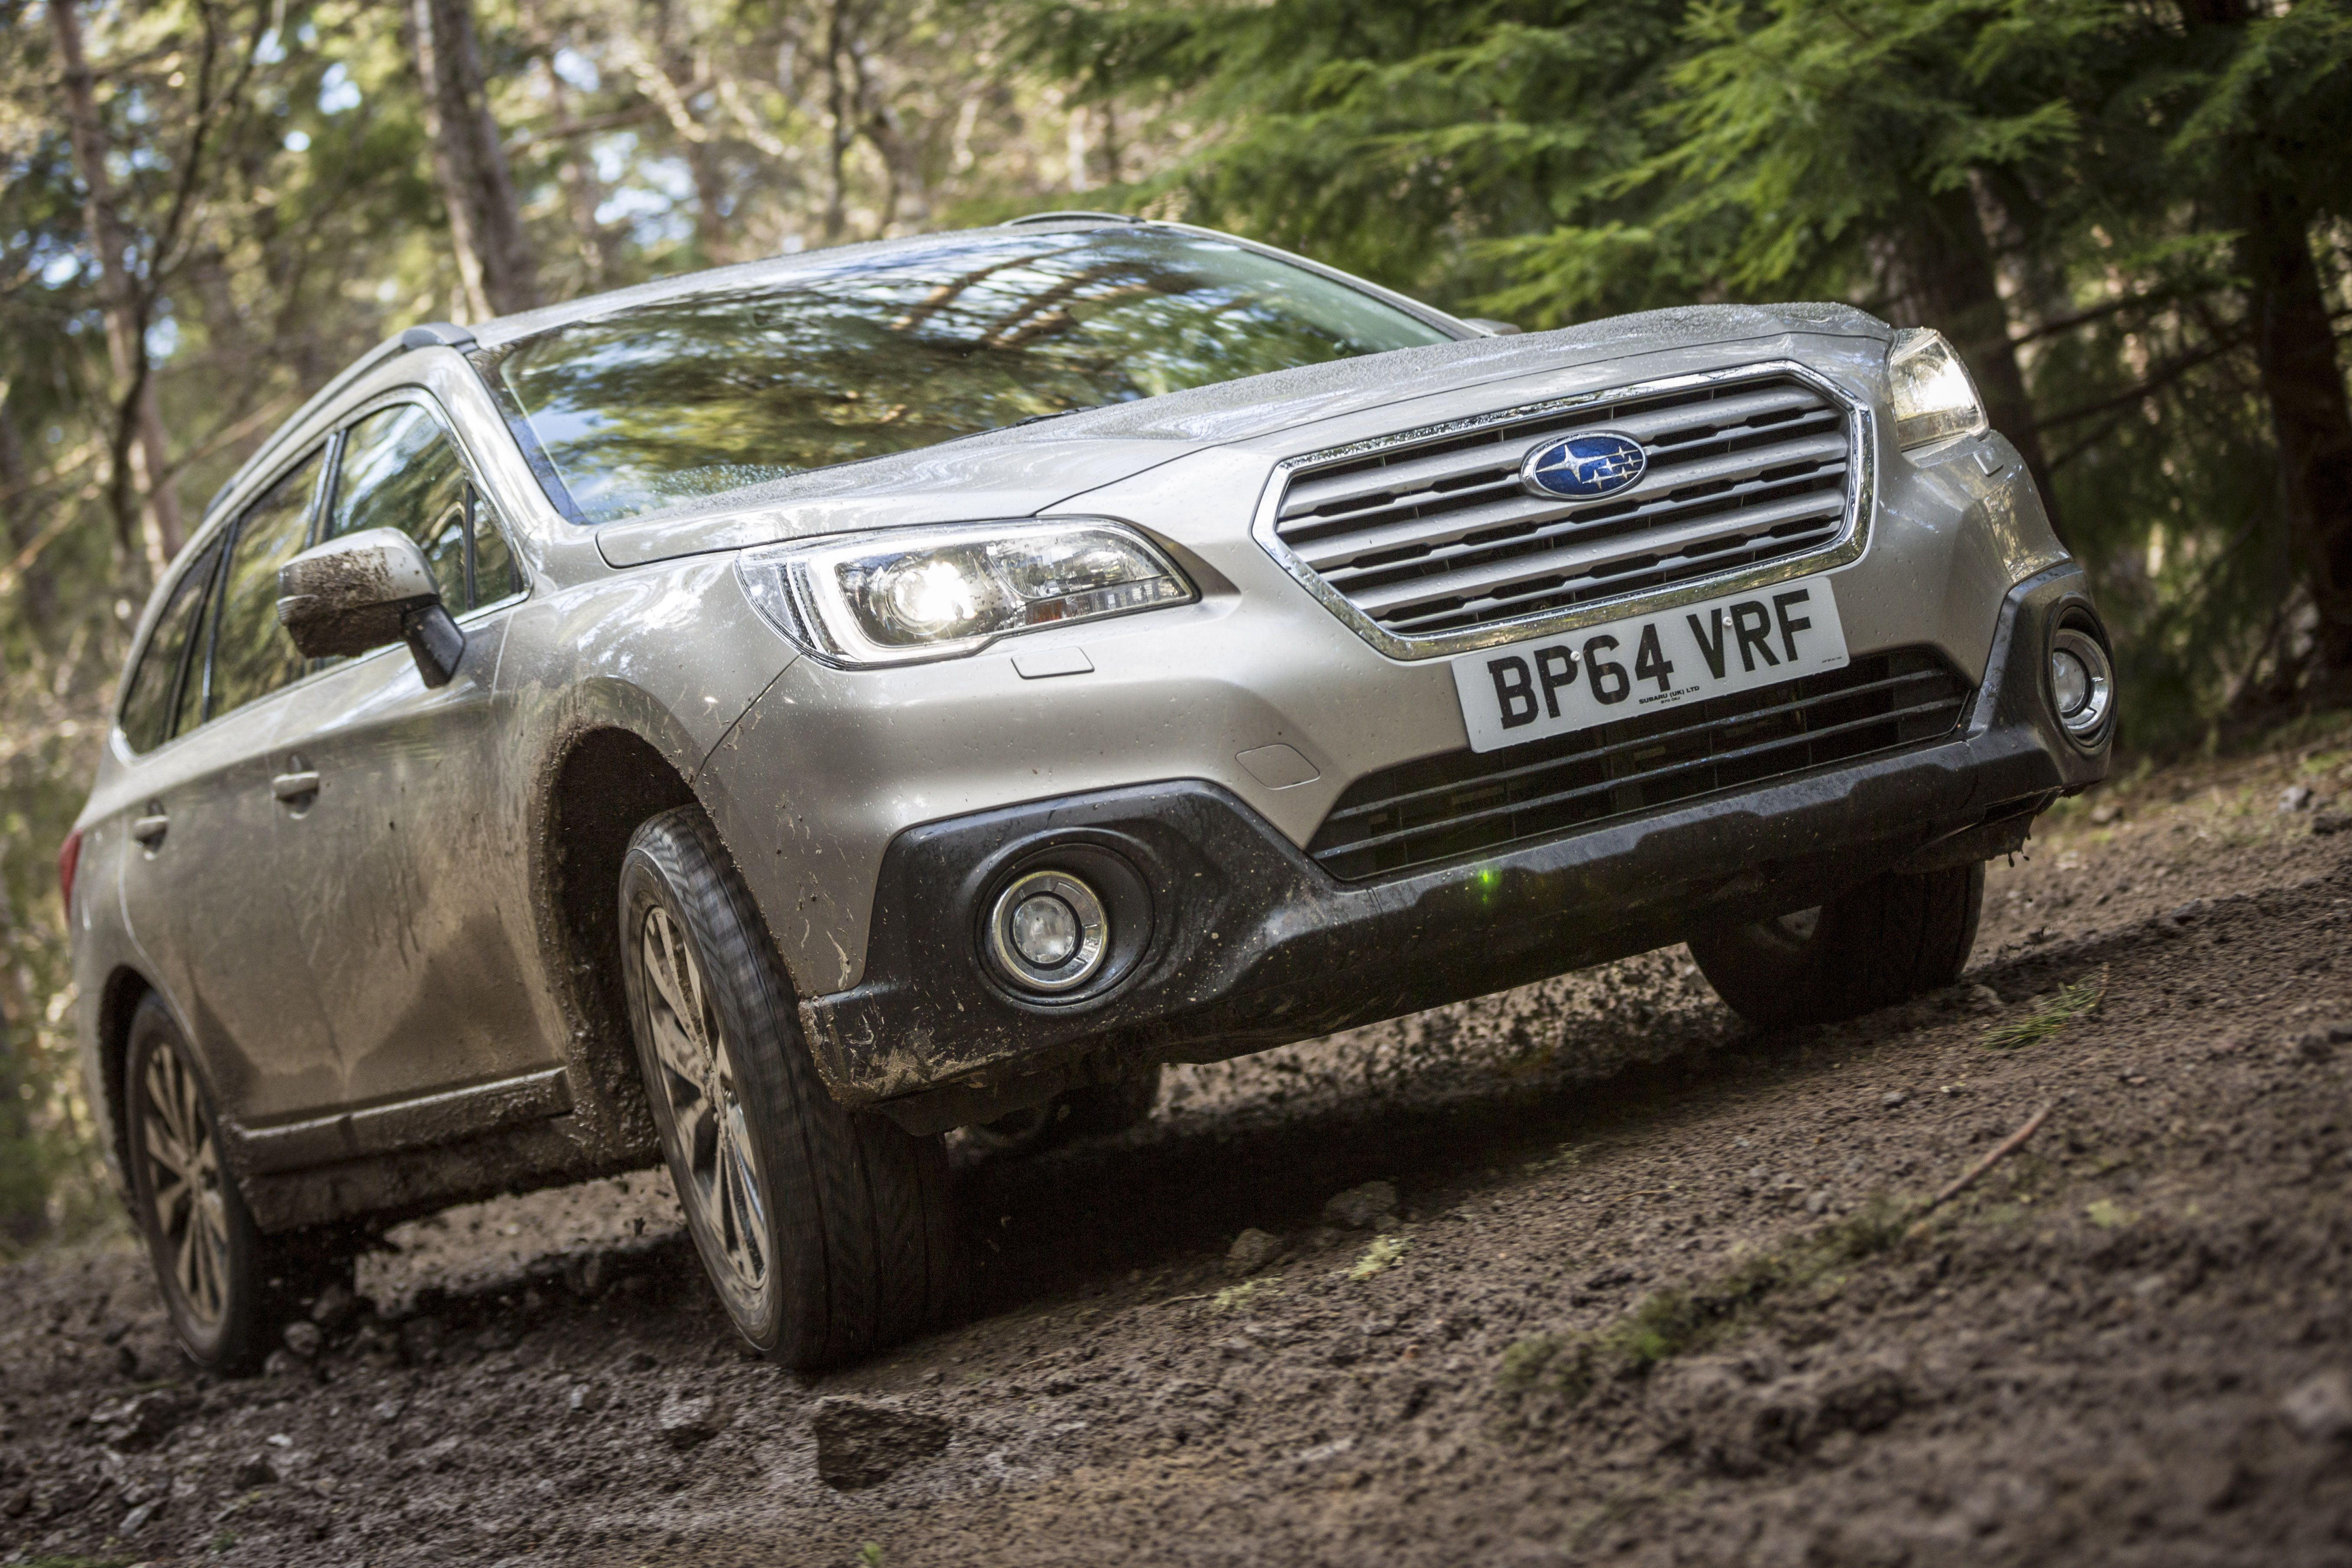 The All New Subaru Outback Has Been Reviewed By The Telegraph And Ben Collins Follow The Story At Www Telegraph Co Uk Subaru Subaruoutbackuk Subaruuk